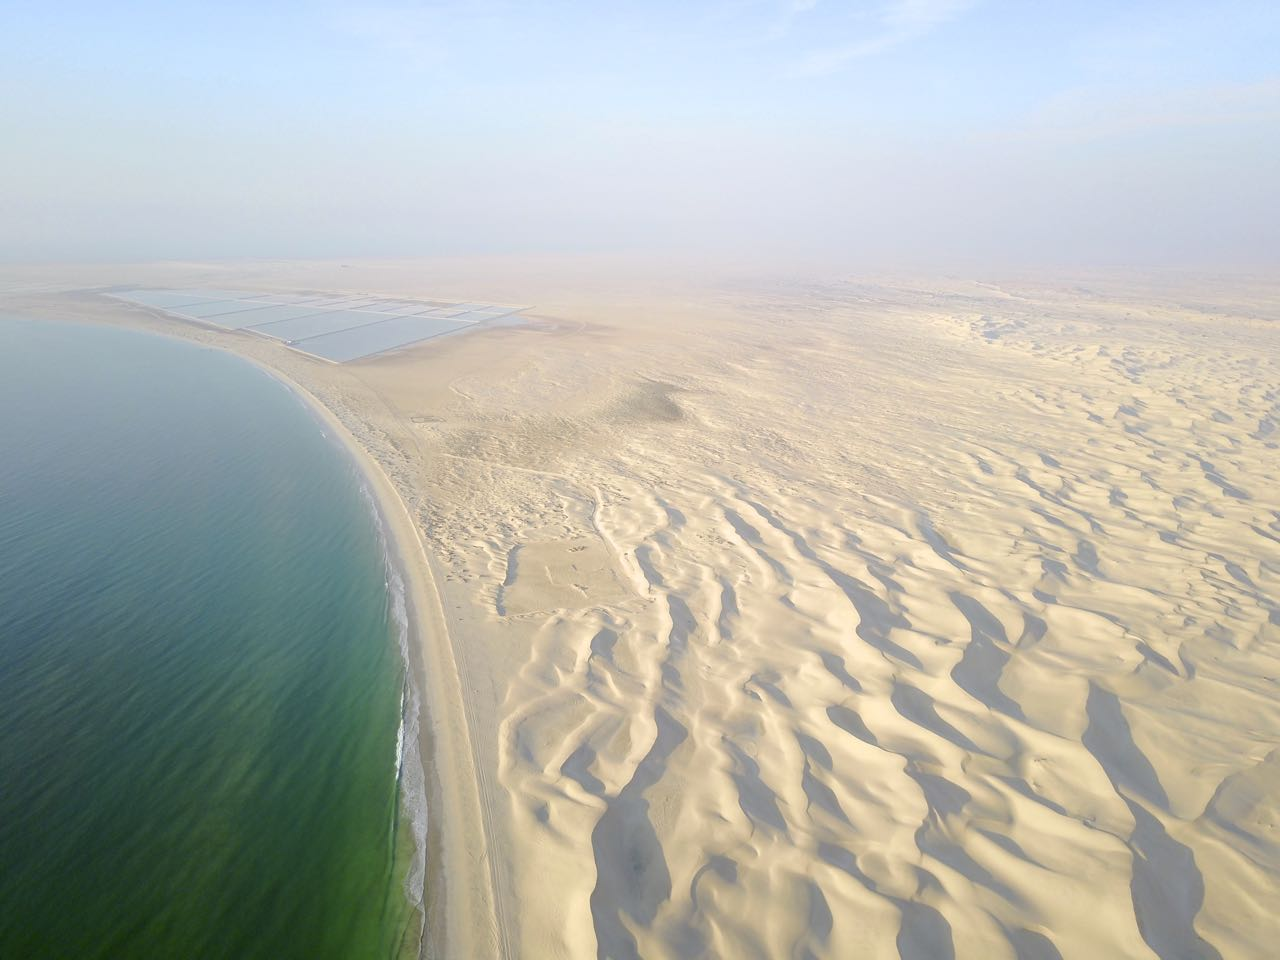 Drone Pic of Sugar Dunes in Oman